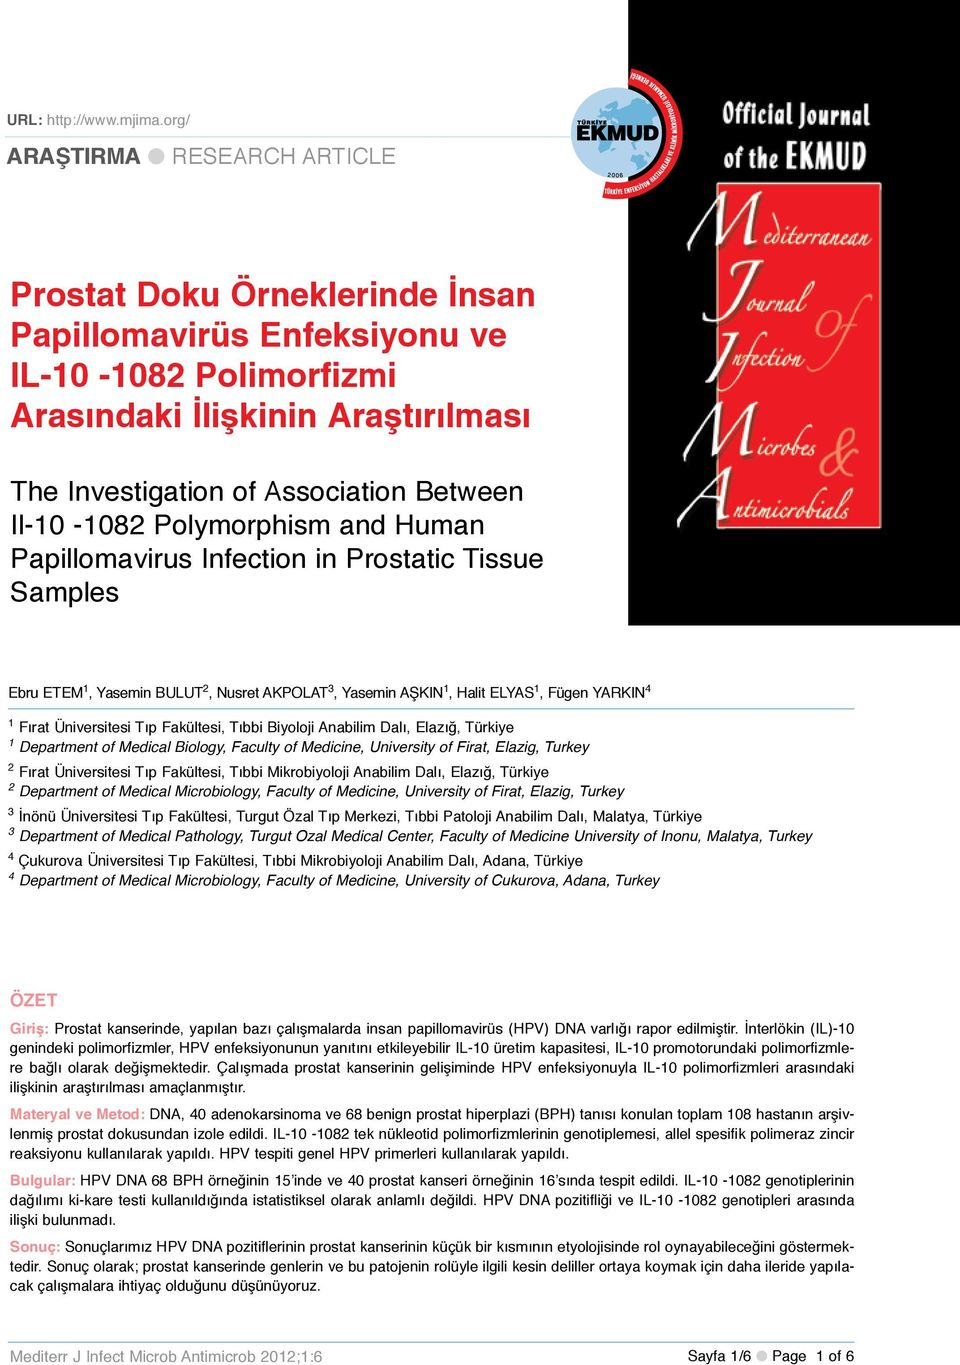 org/ Prostat Doku Örneklerinde İnsan Papillomavirüs Enfeksiyonu ve IL-10-1082 Polimorfizmi Arasındaki İlişkinin Araştırılması The Investigation of Association Between Il-10-1082 Polymorphism and